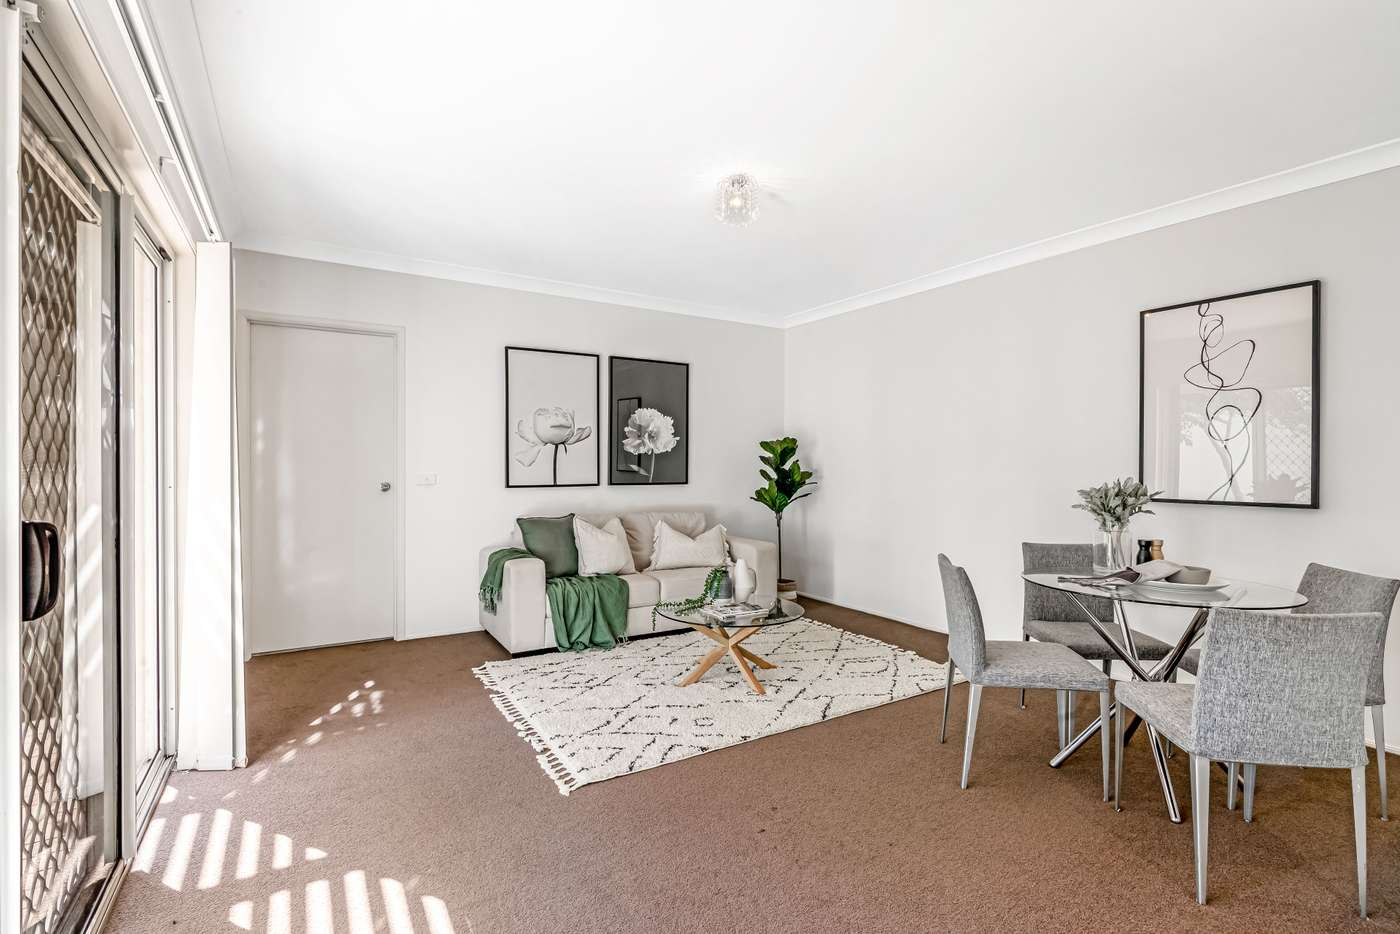 Fifth view of Homely house listing, 35 Midlands Terrace, Stanhope Gardens NSW 2768